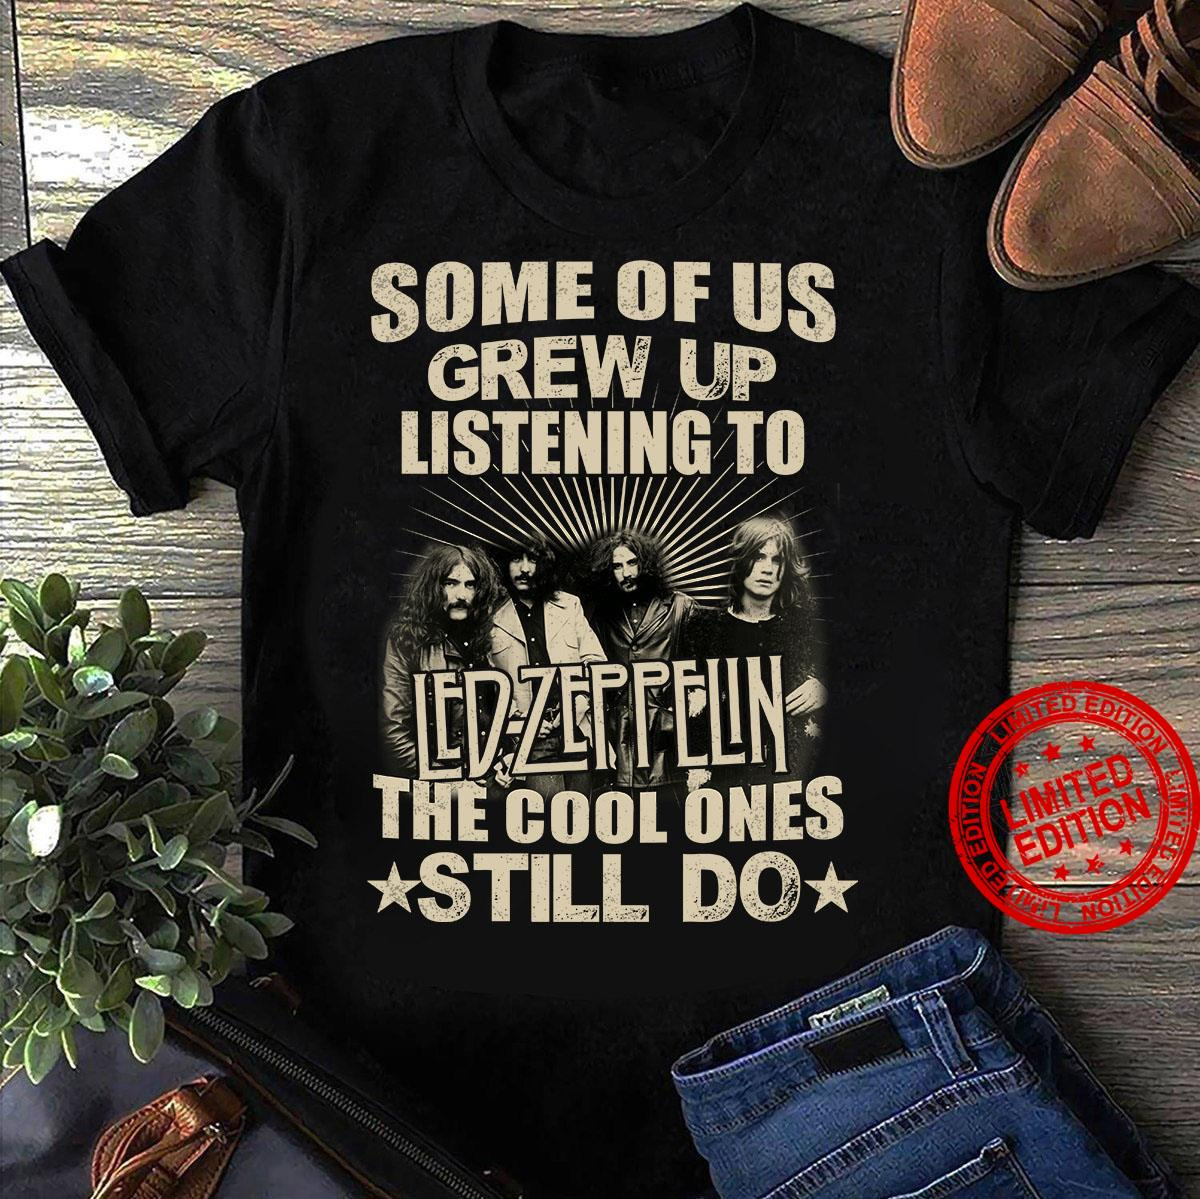 Some Of Us Grew Up Listening To Led Zeppelin The Cool Ones Still Do Shirt